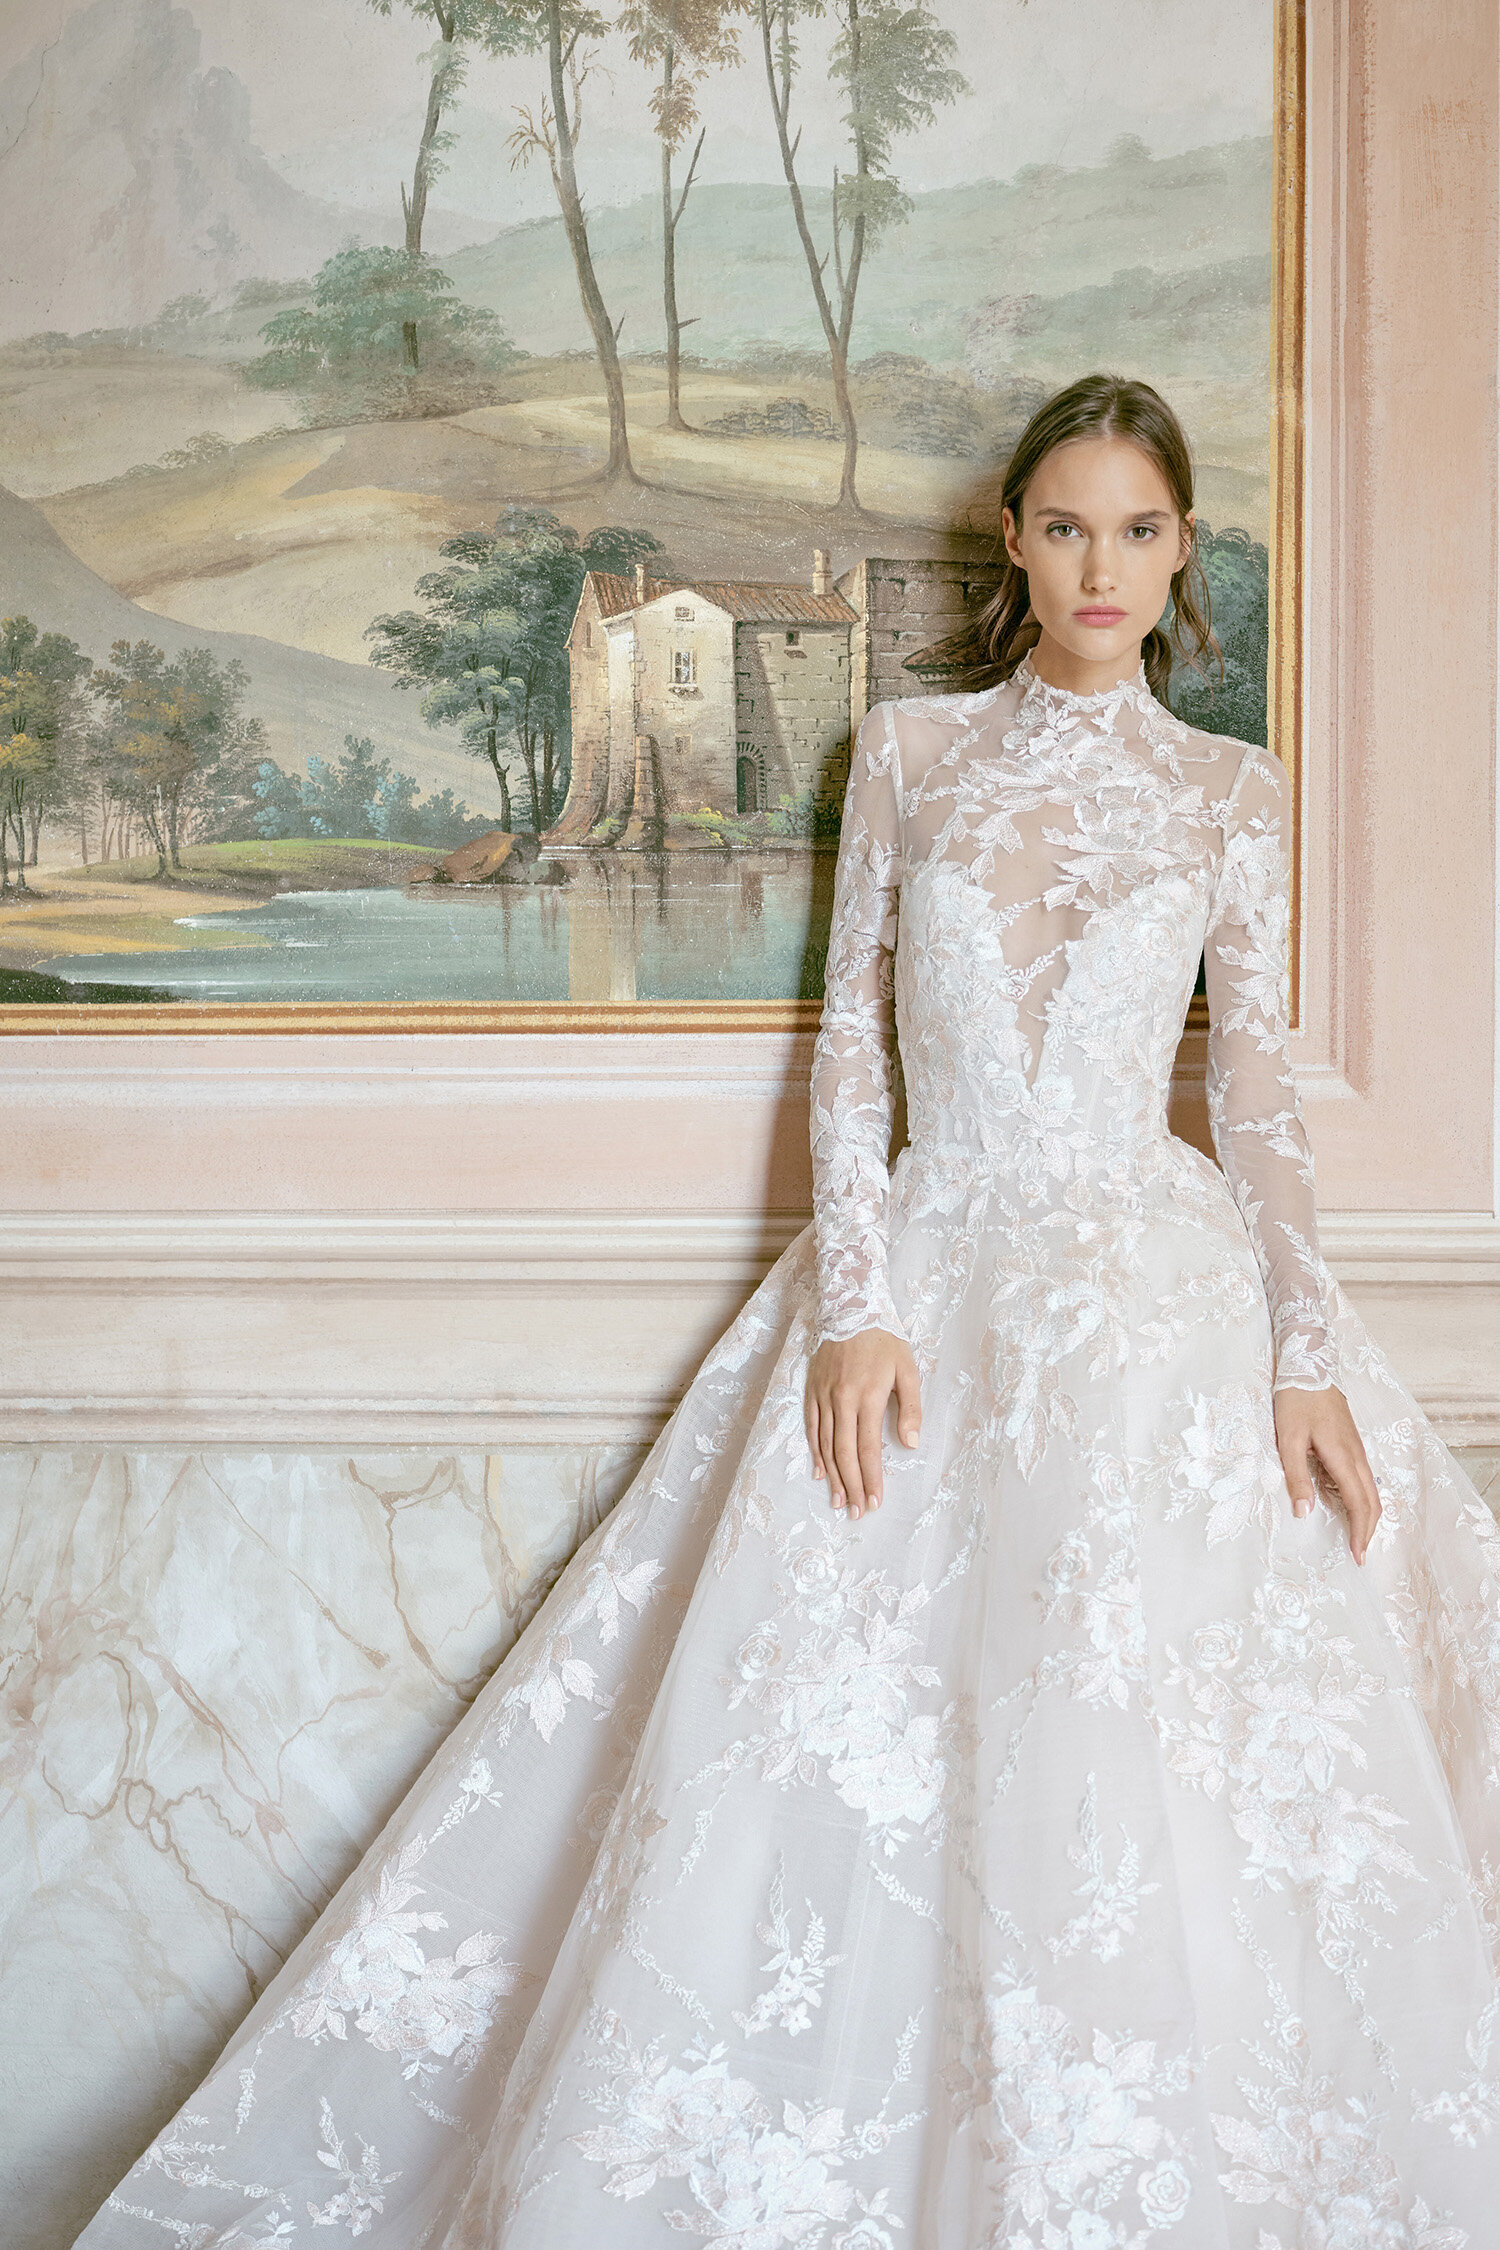 MoniqueLhuillier-Fall2020-Bridal-Look5-Wish-ktmerry (1).jpg